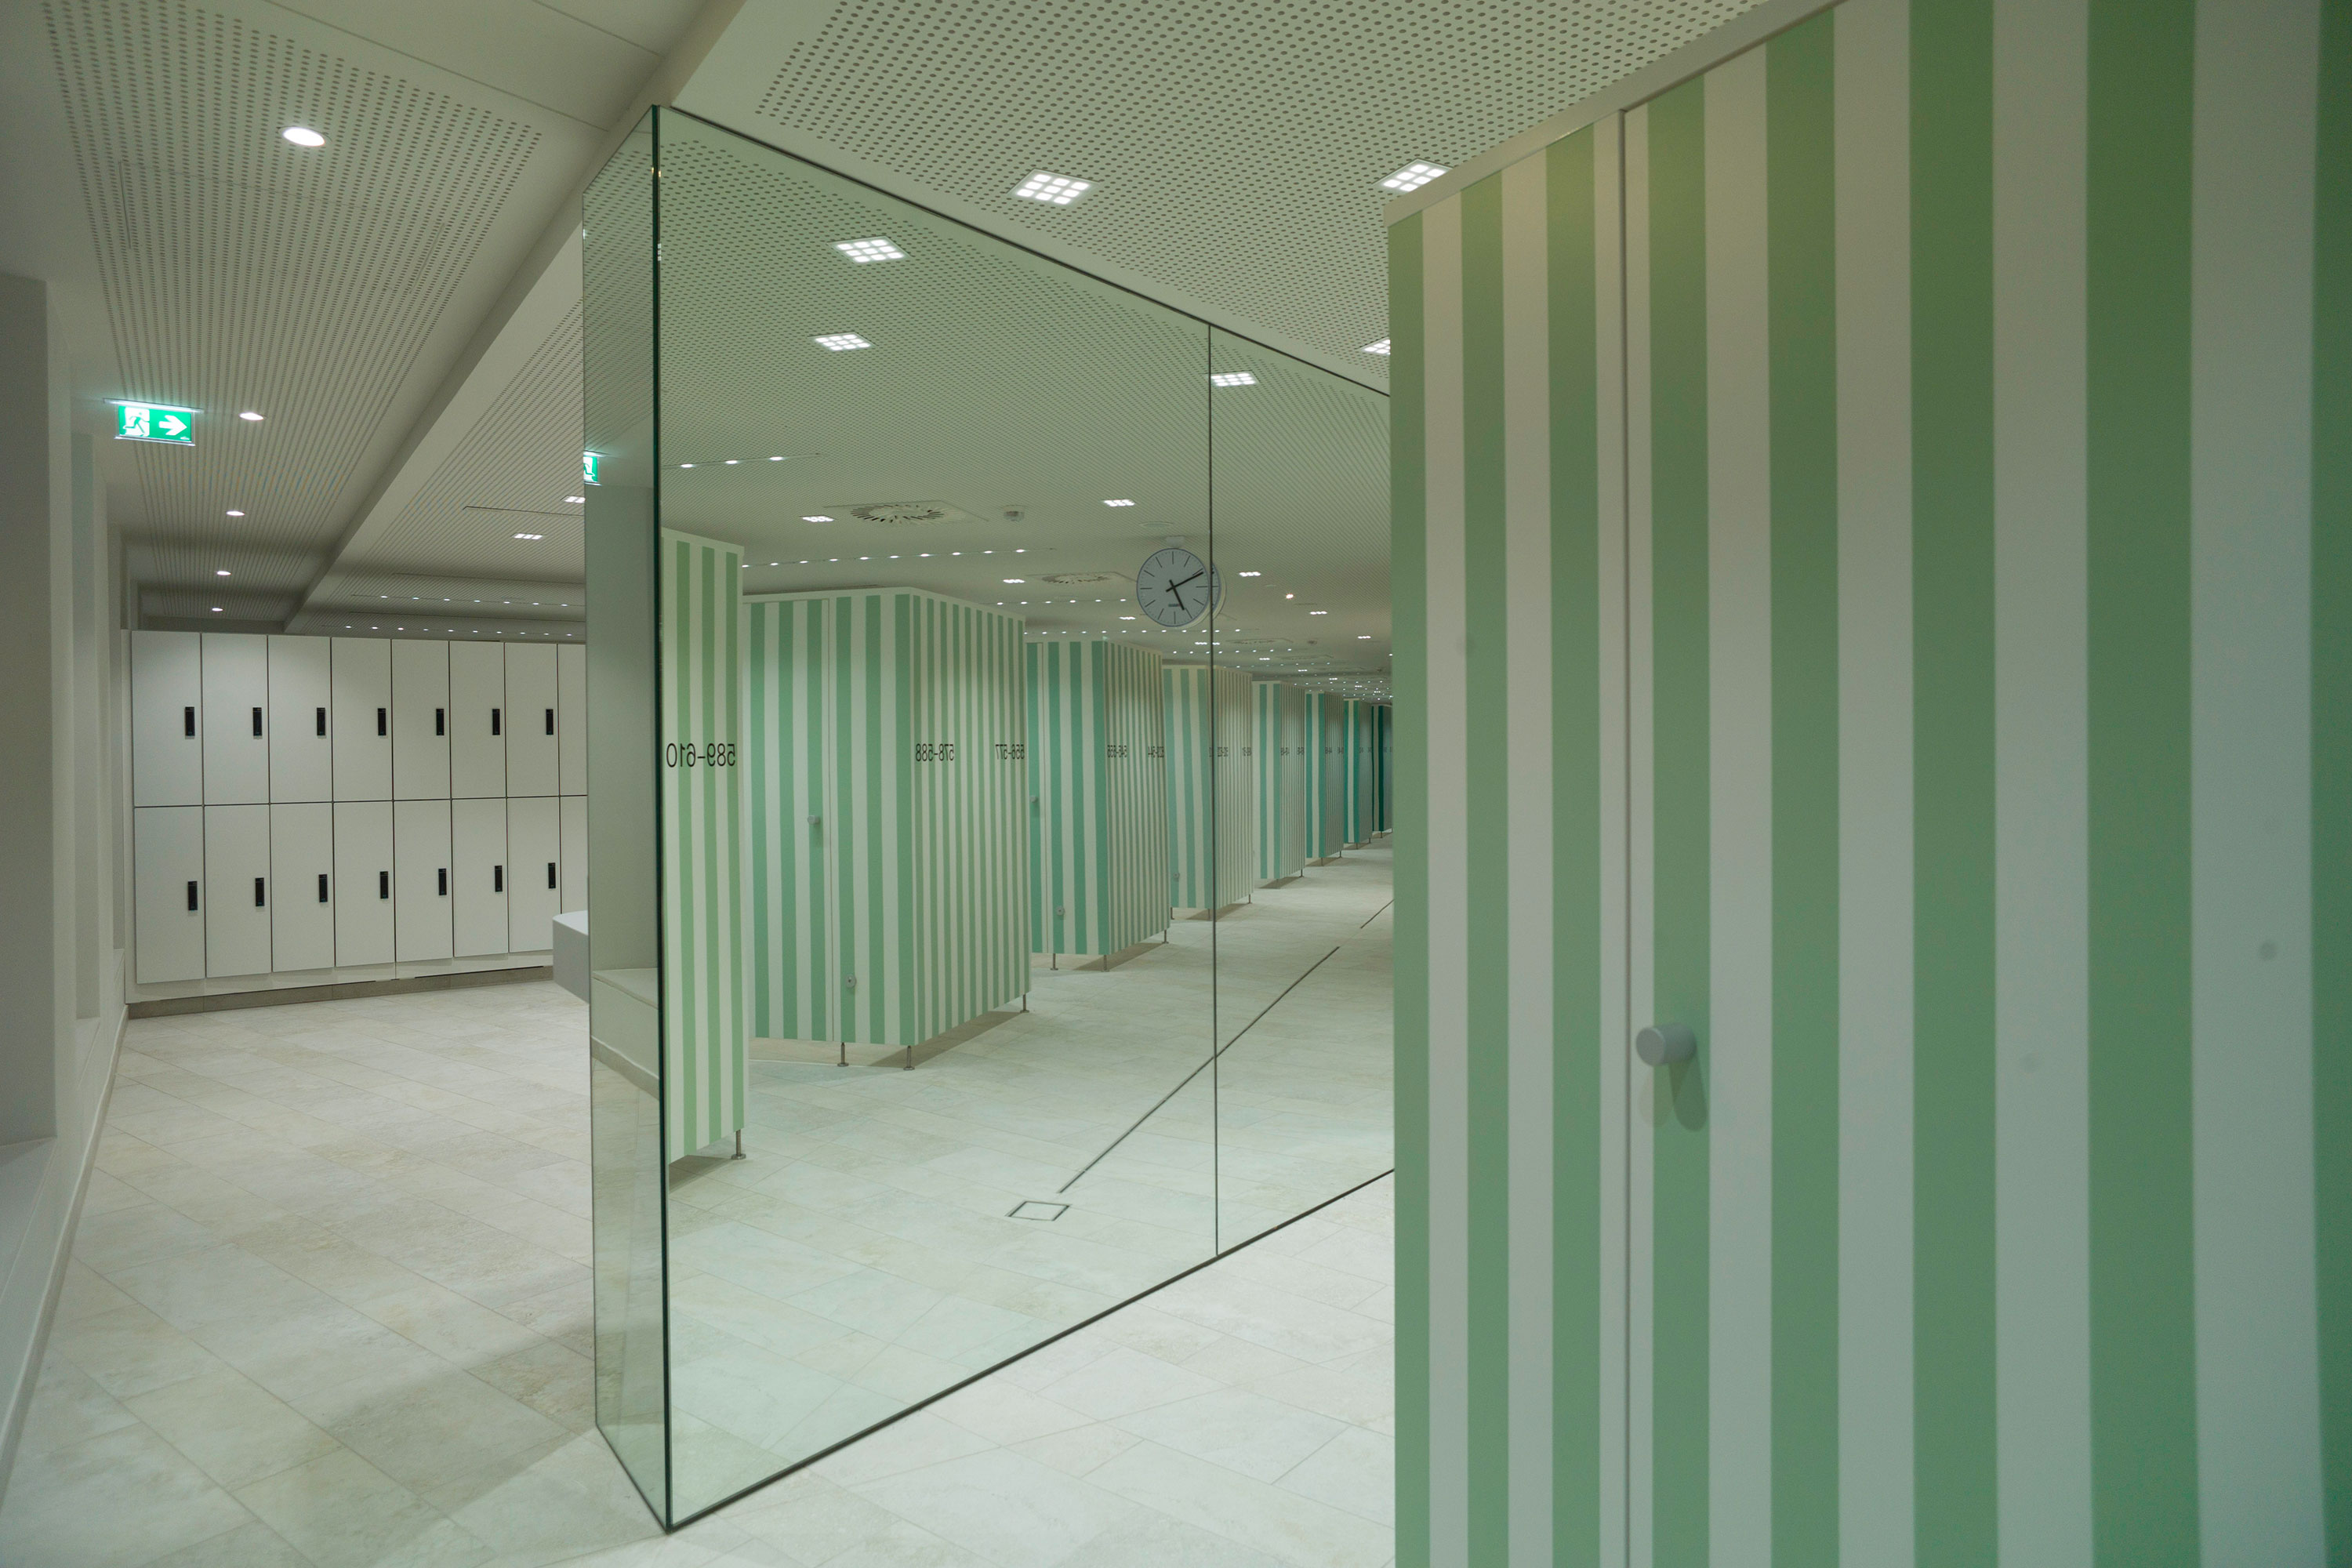 Paracelsus Bad & Kurhaus in Salzburg, changing area. Photo: Berger+Parkkinen Architekten